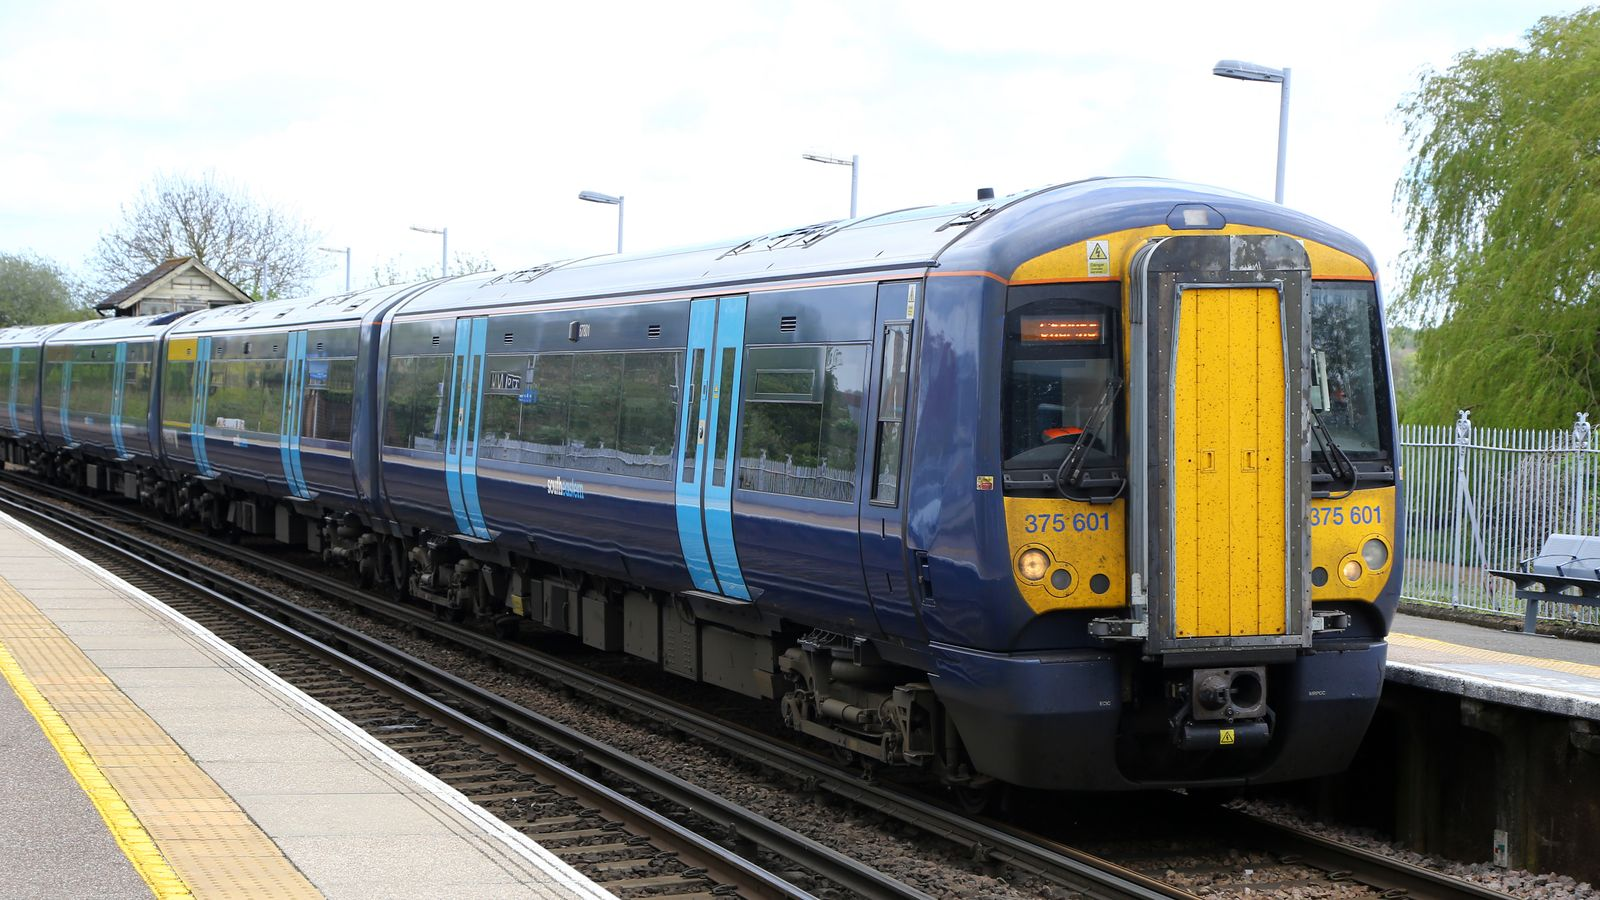 Southeastern operator stripped of franchise after £25m 'serious breach'